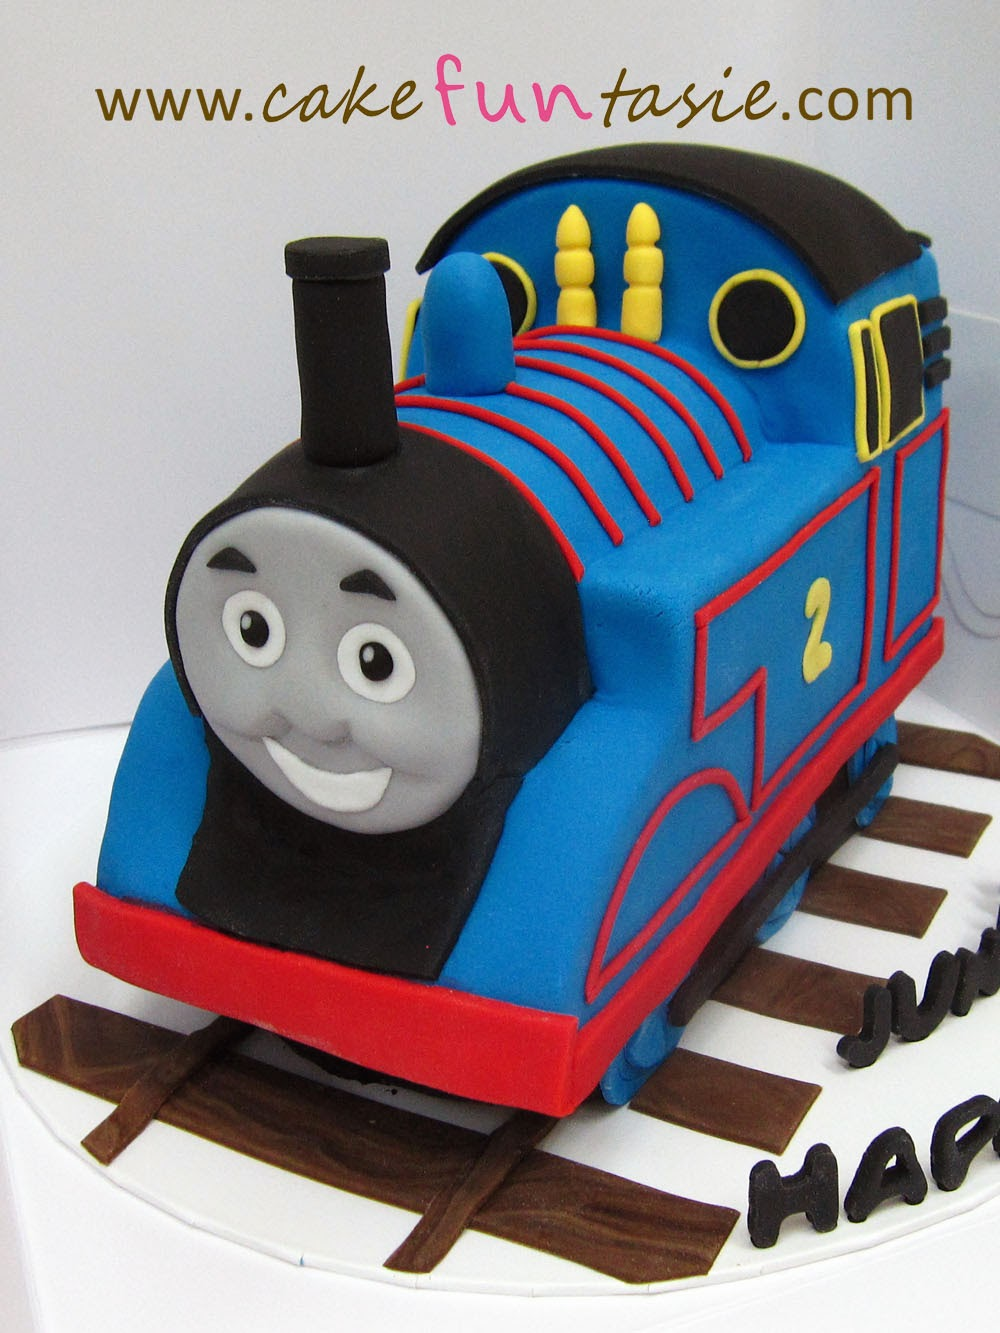 Cake Funtasie 3d Thomas The Train Cake